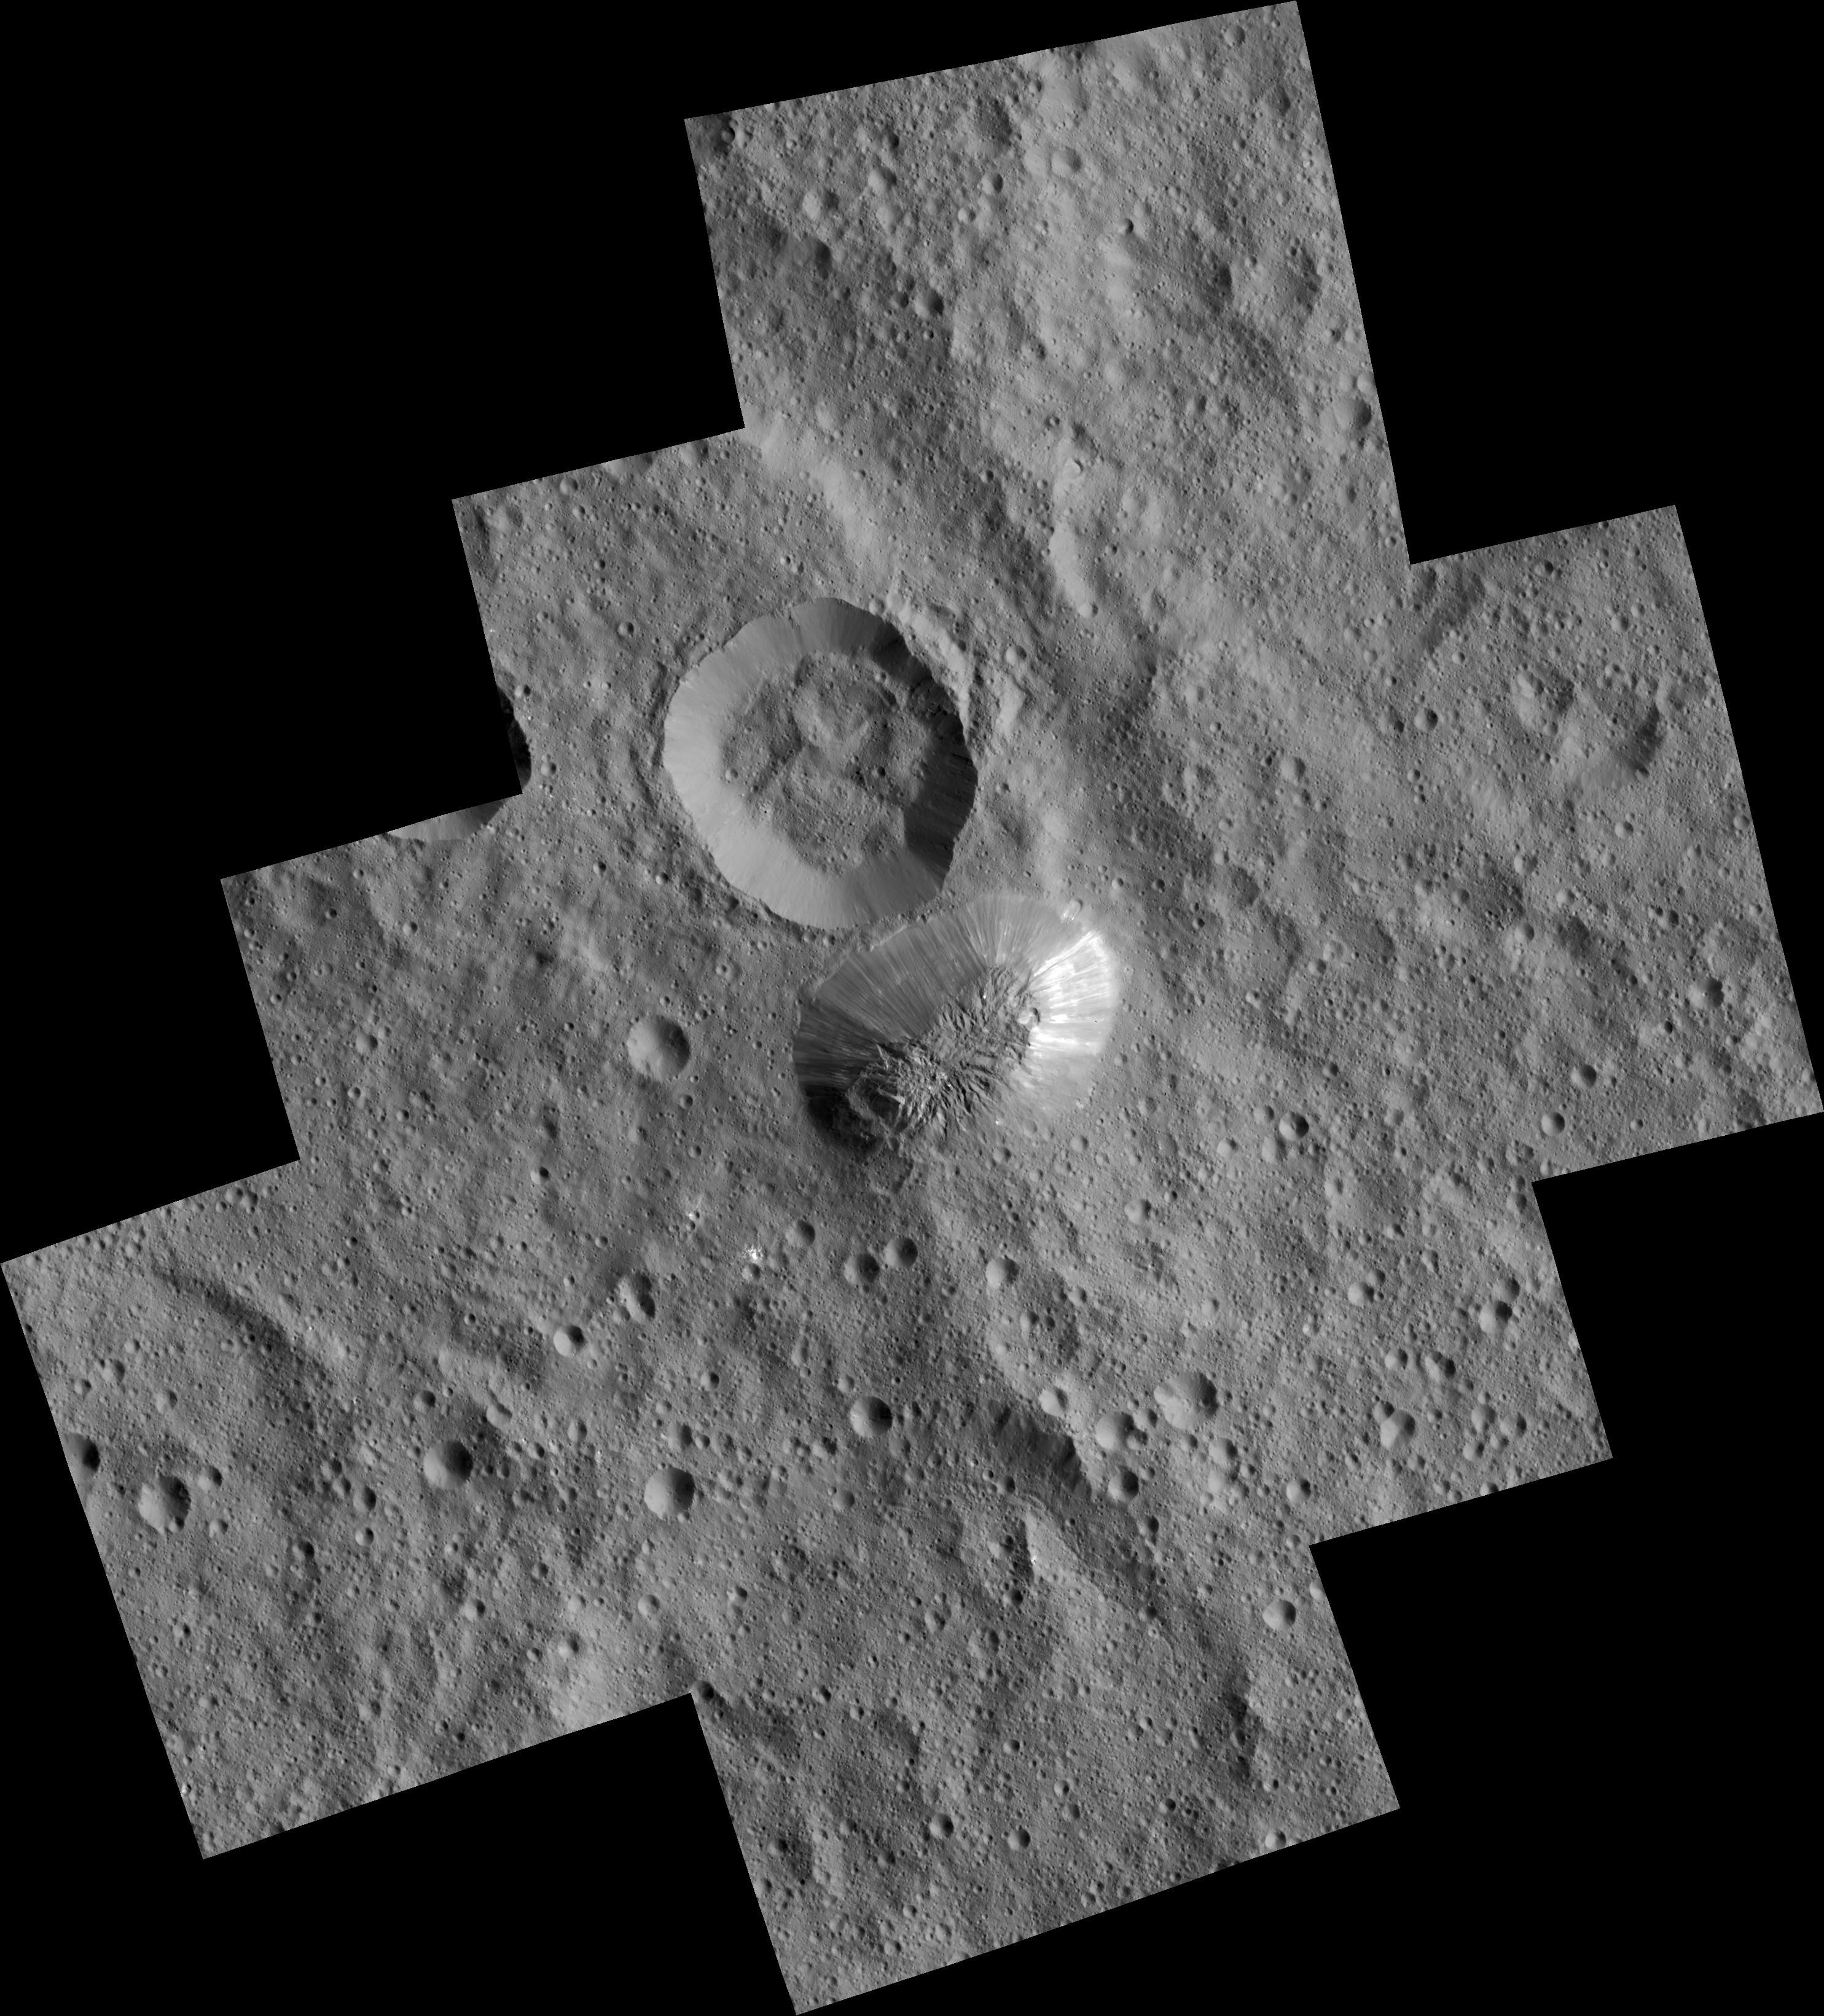 Ahuna Mons. (NASA / JPL / Dawn mission)